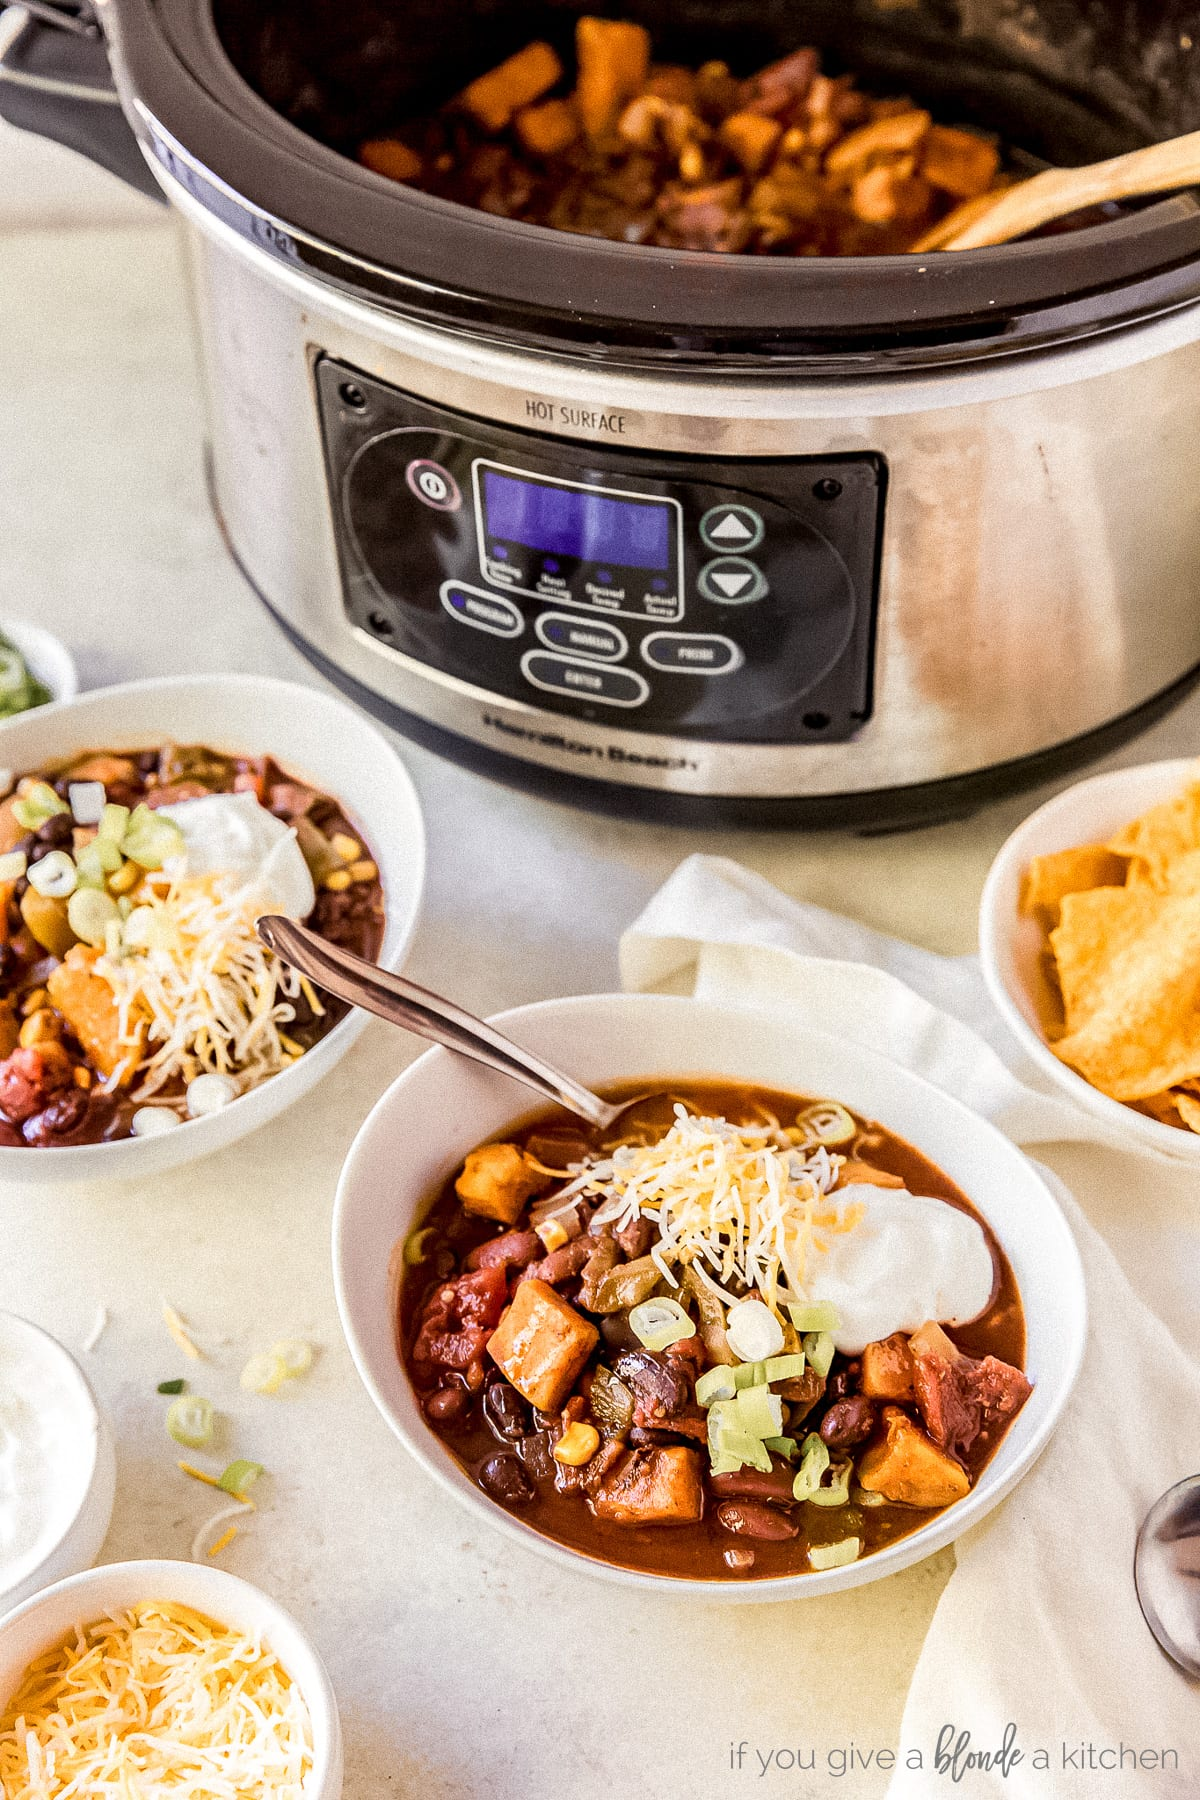 two bowls of sweet potato chili in front of stainless steel slow cooker full of chili